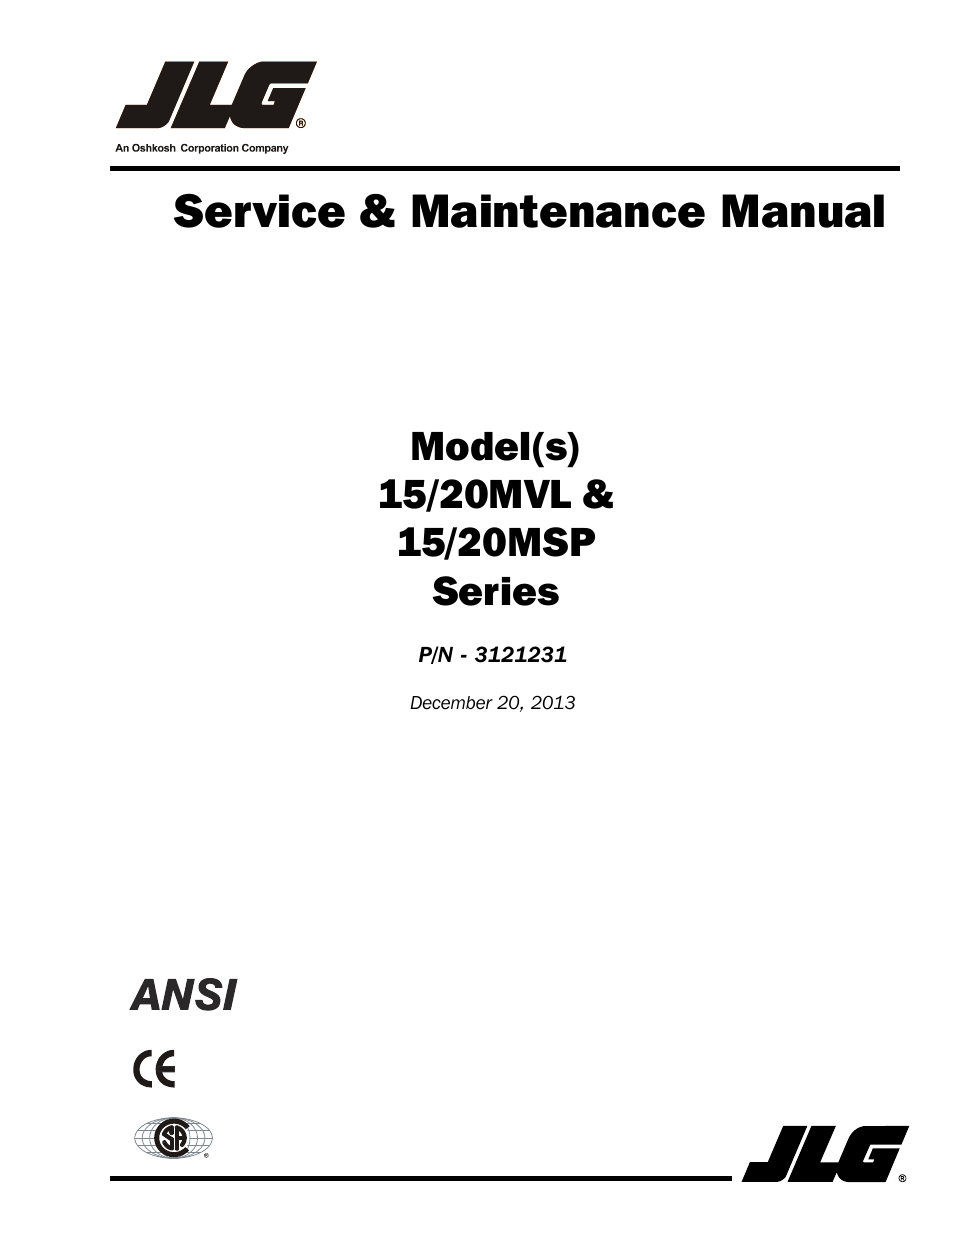 jlg 15  20msp service manual user manual